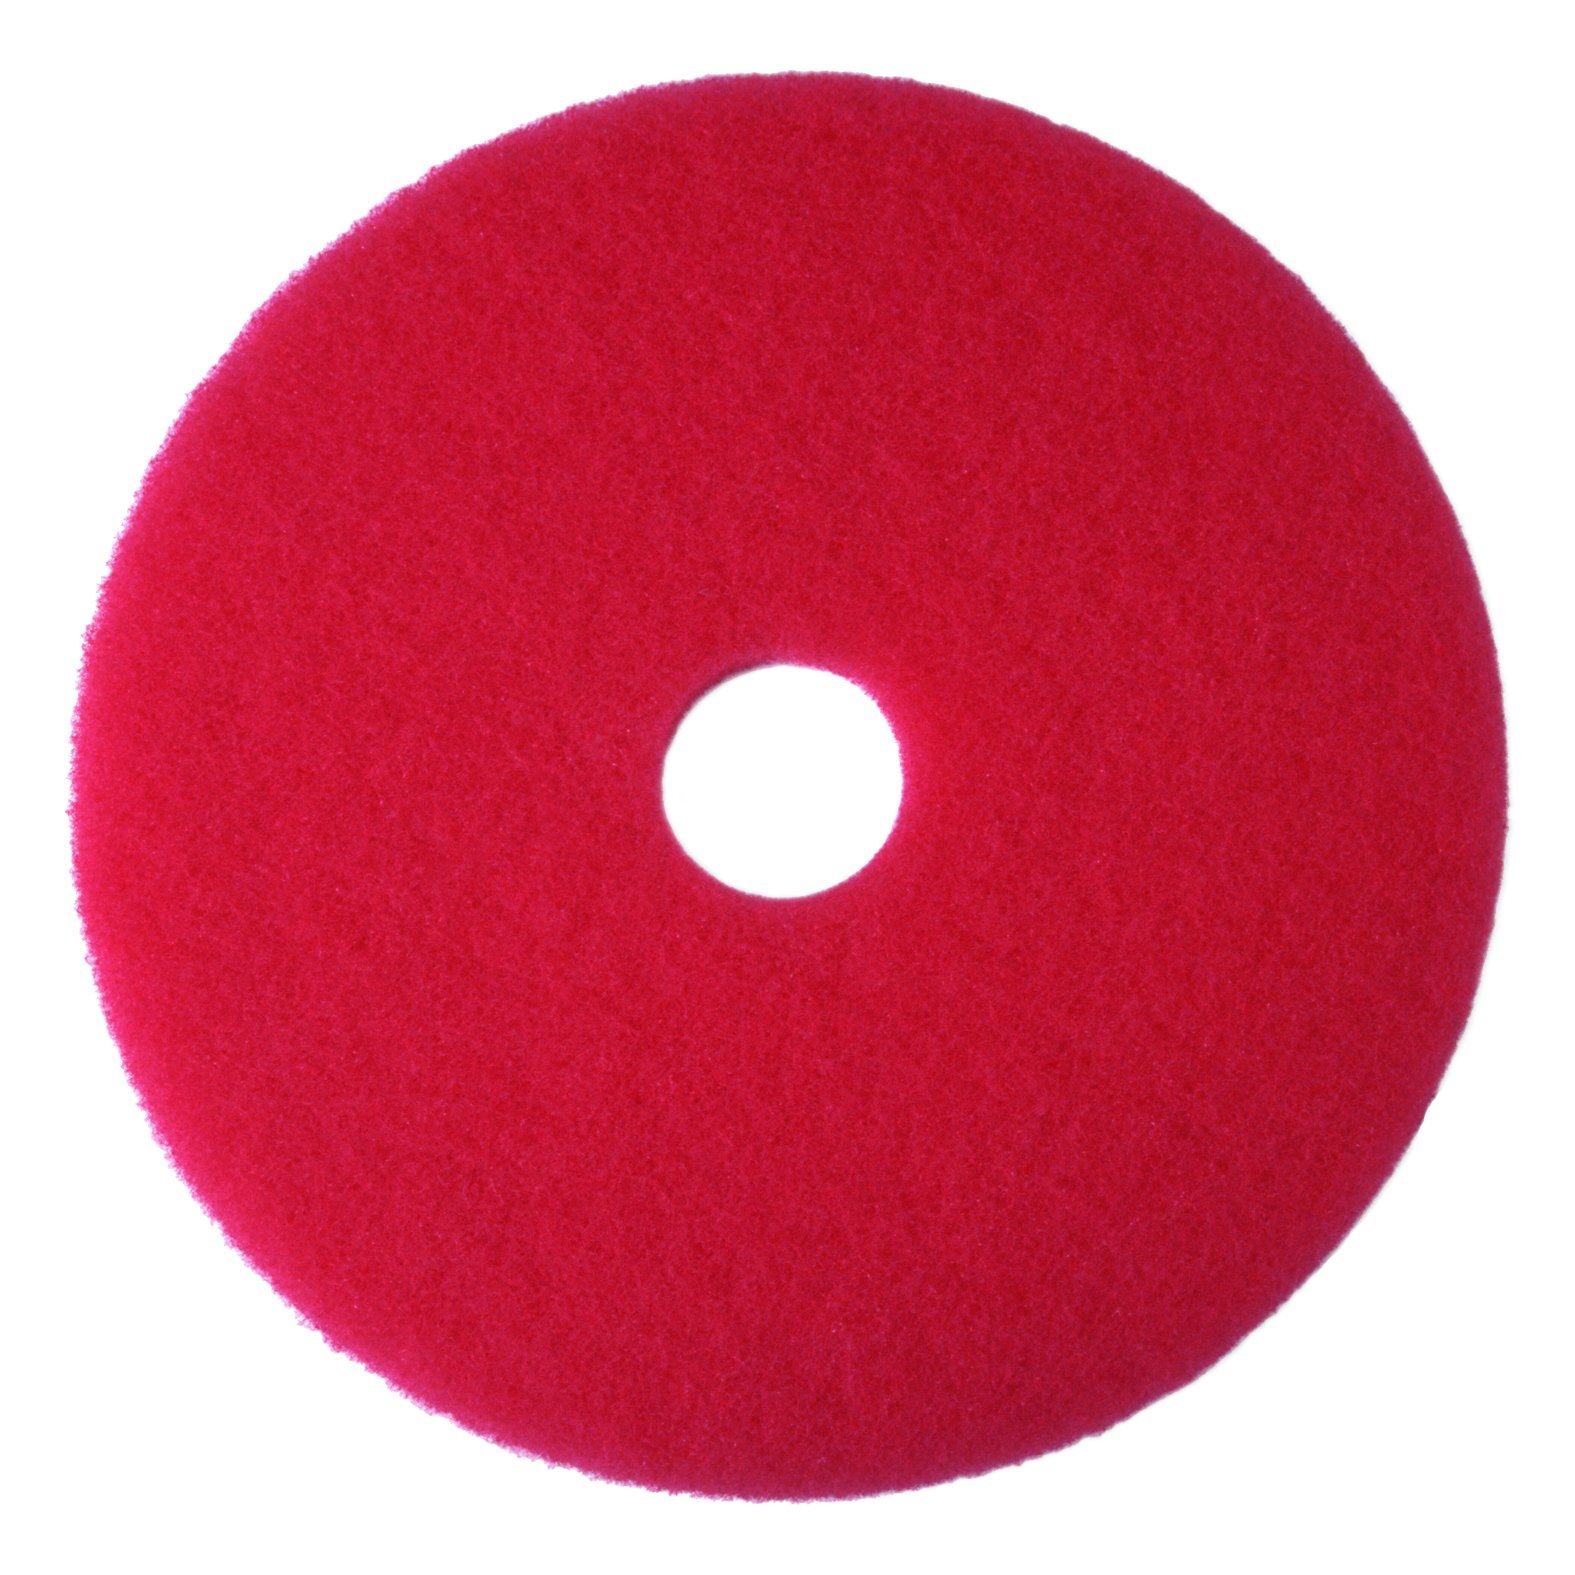 3M Red Buffer Pad 5100, 20'' Floor Buffer, Machine Use (Case of 5) - 35053 by 3M